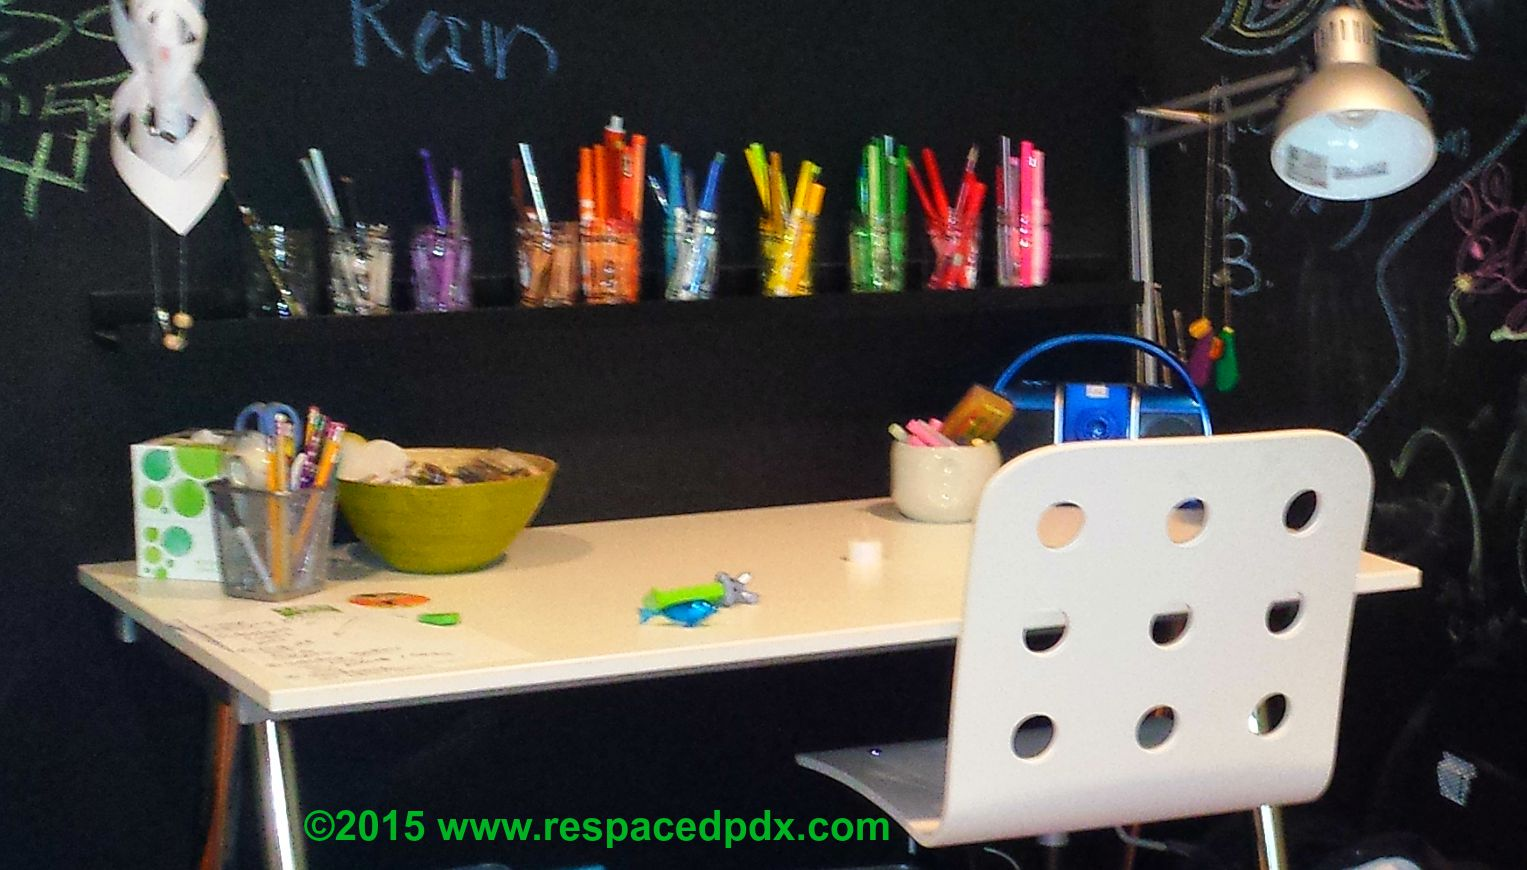 How To Organize Kids 39 School Supplies At Home Respaced